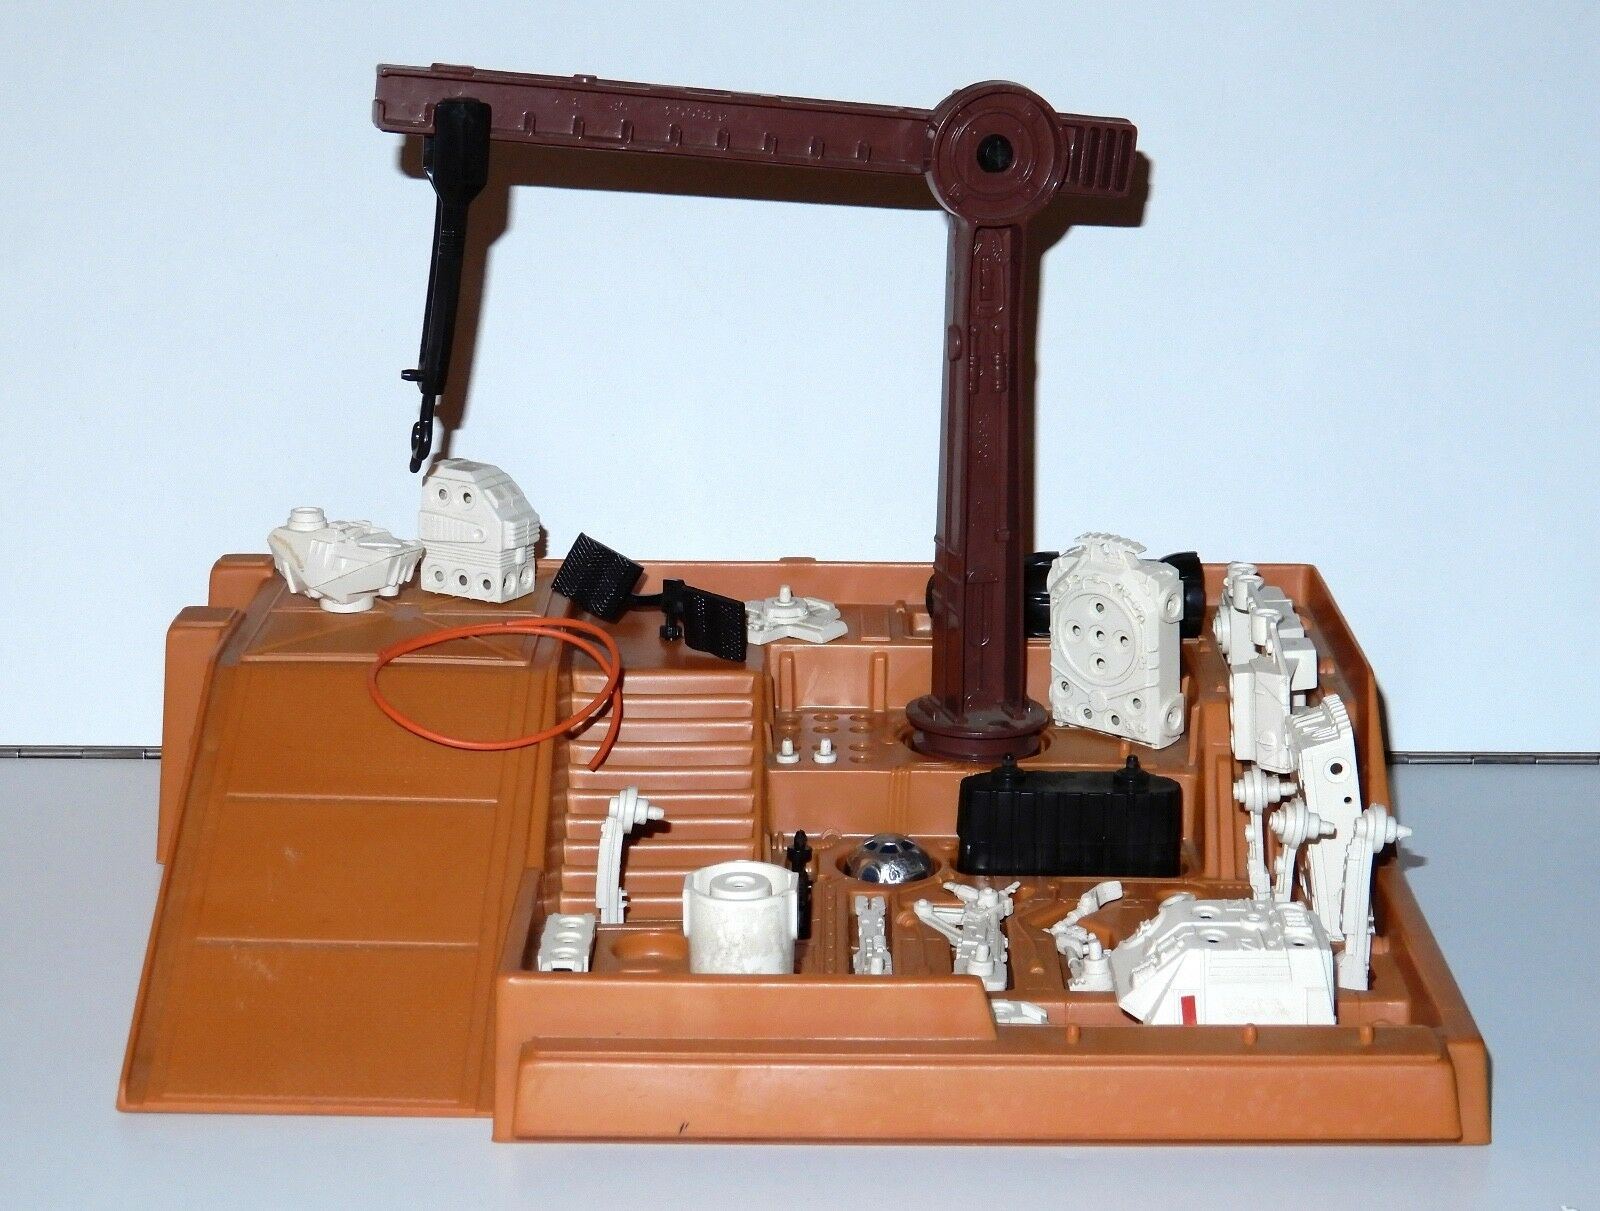 STAR WARS KENNER PLAYSET 1977 ANH DROID FACTORY NEAR COMPLETE WYSIWYG